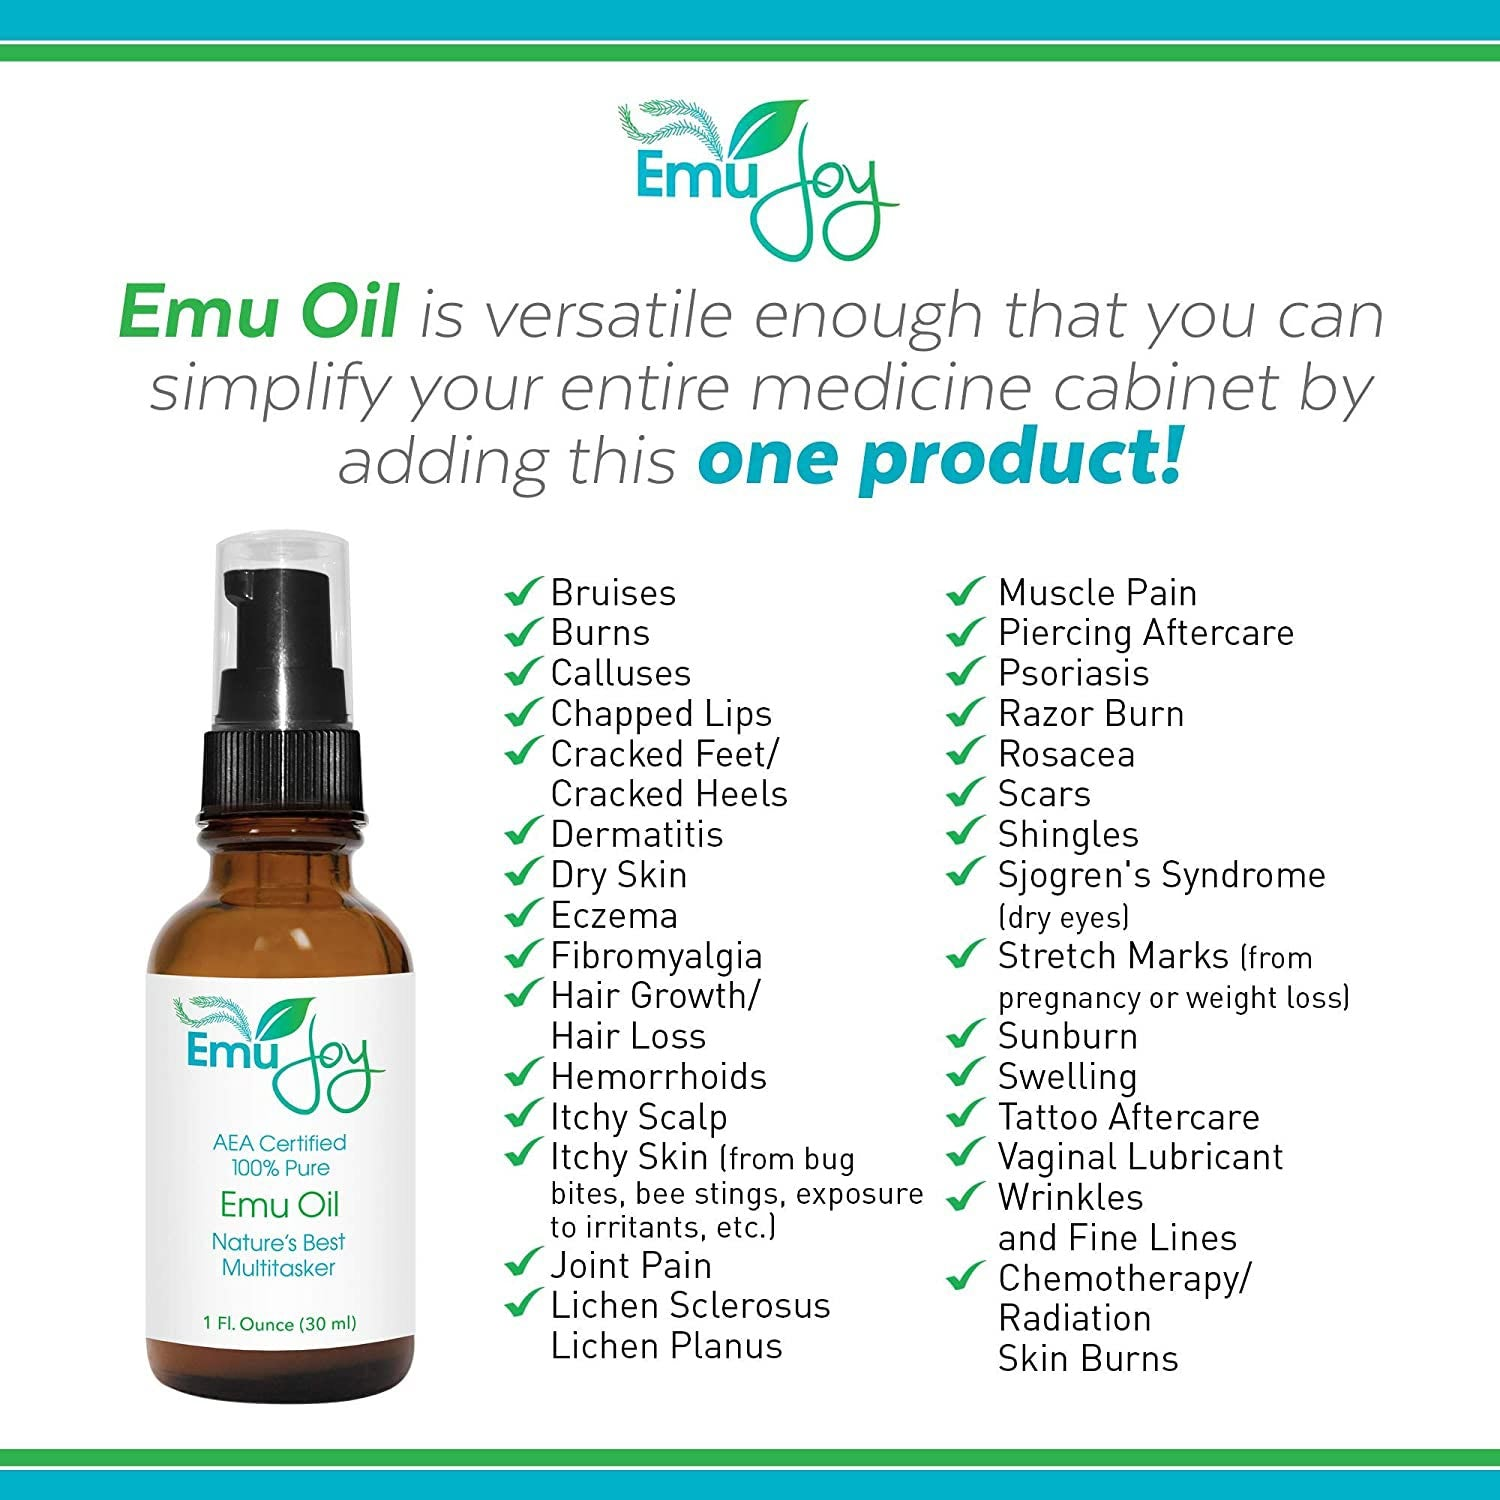 Ethically Sourced Emu Oil for Chemo & Radiation Burns